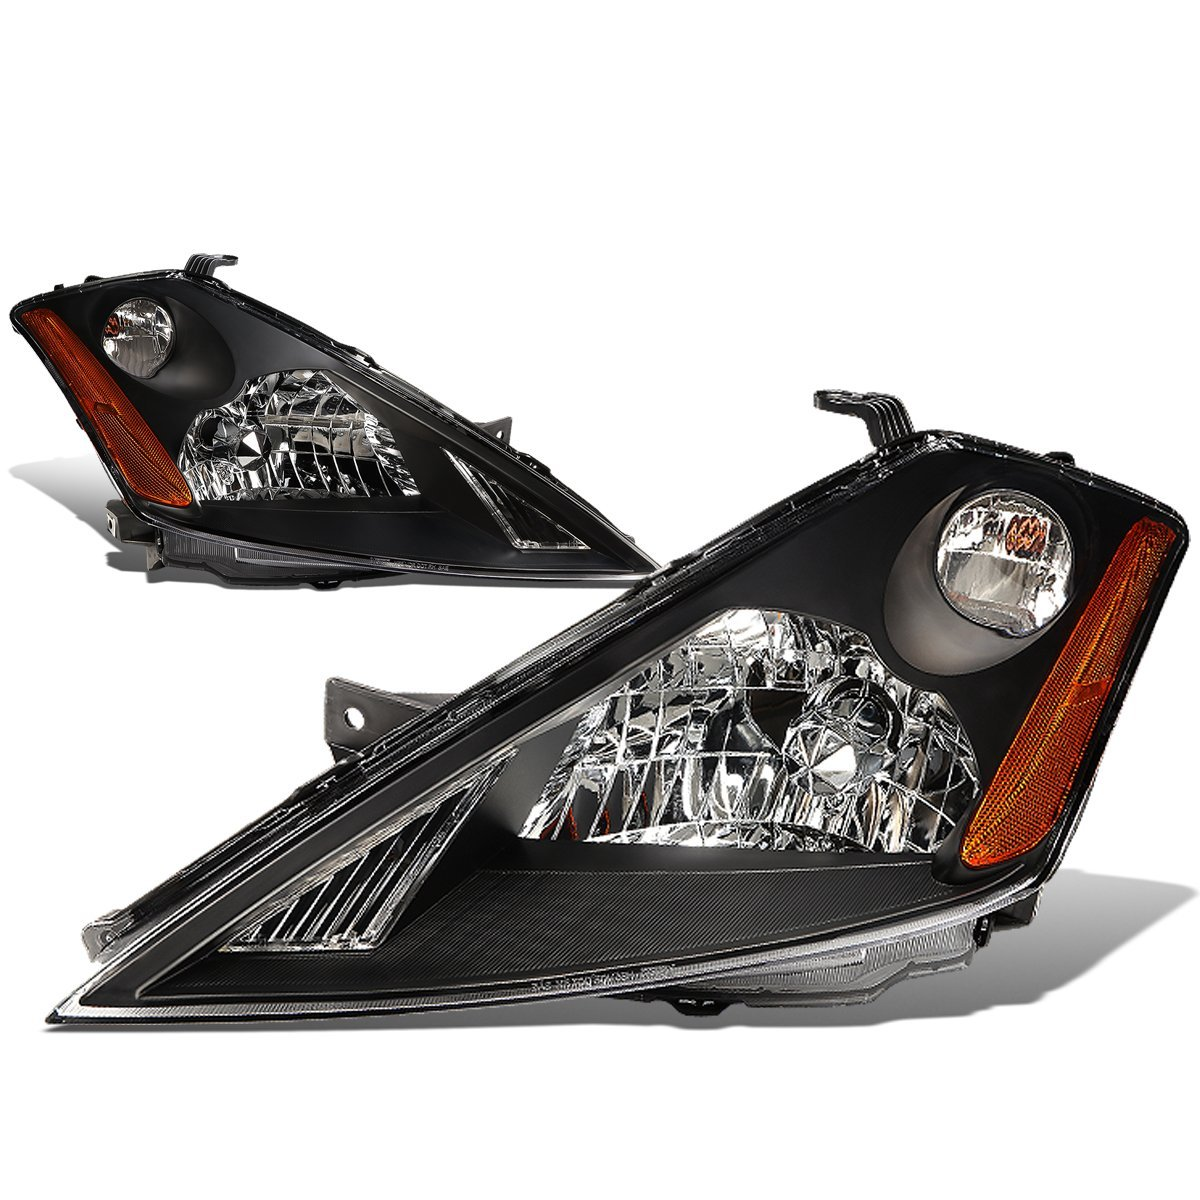 DNA MOTORING HL-OH-077-BK-AM Headlight Assembly, Driver and Passenger Side